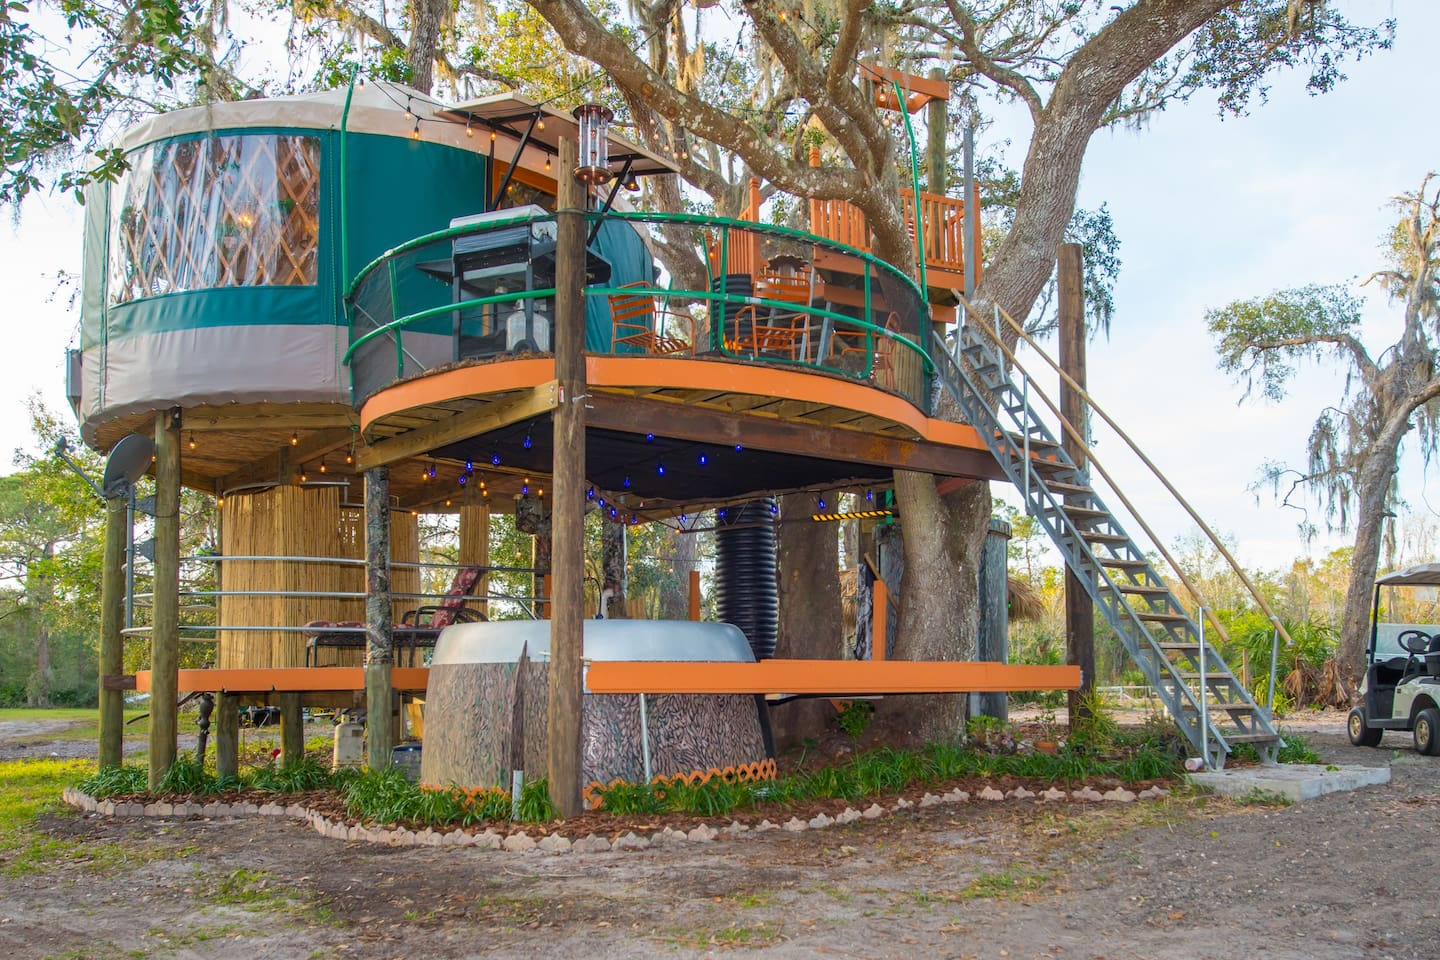 Tree house at Danville